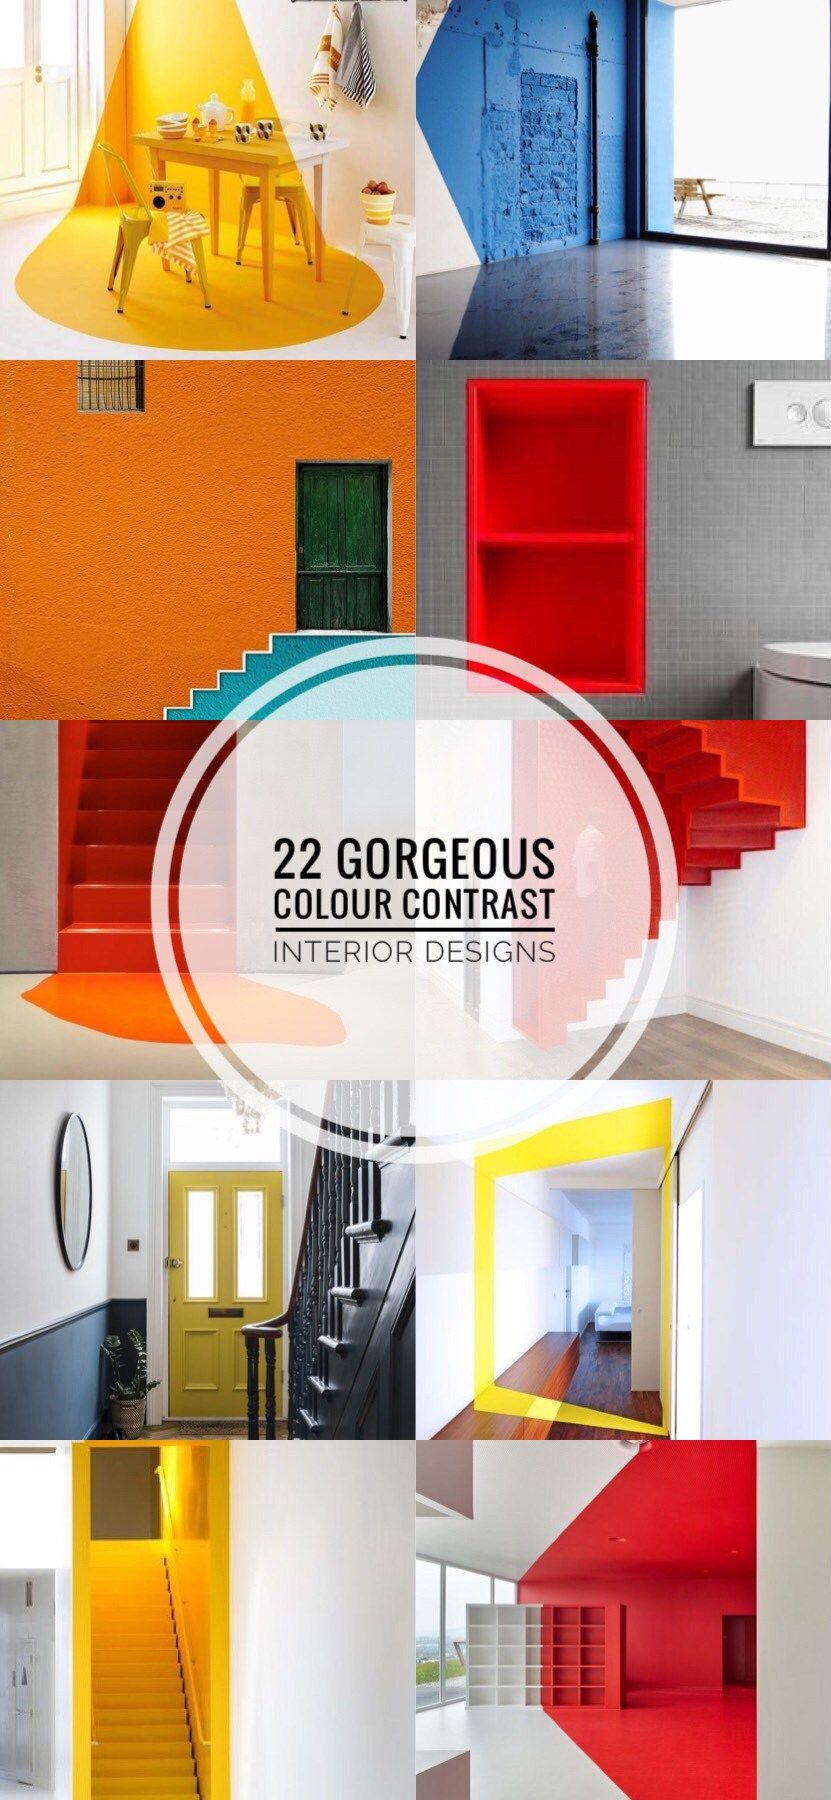 22 Gorgeous Colour Contrast Interior Designs From Drab To Fab Contrast Interior Design Wellness Design Contrasting Colors